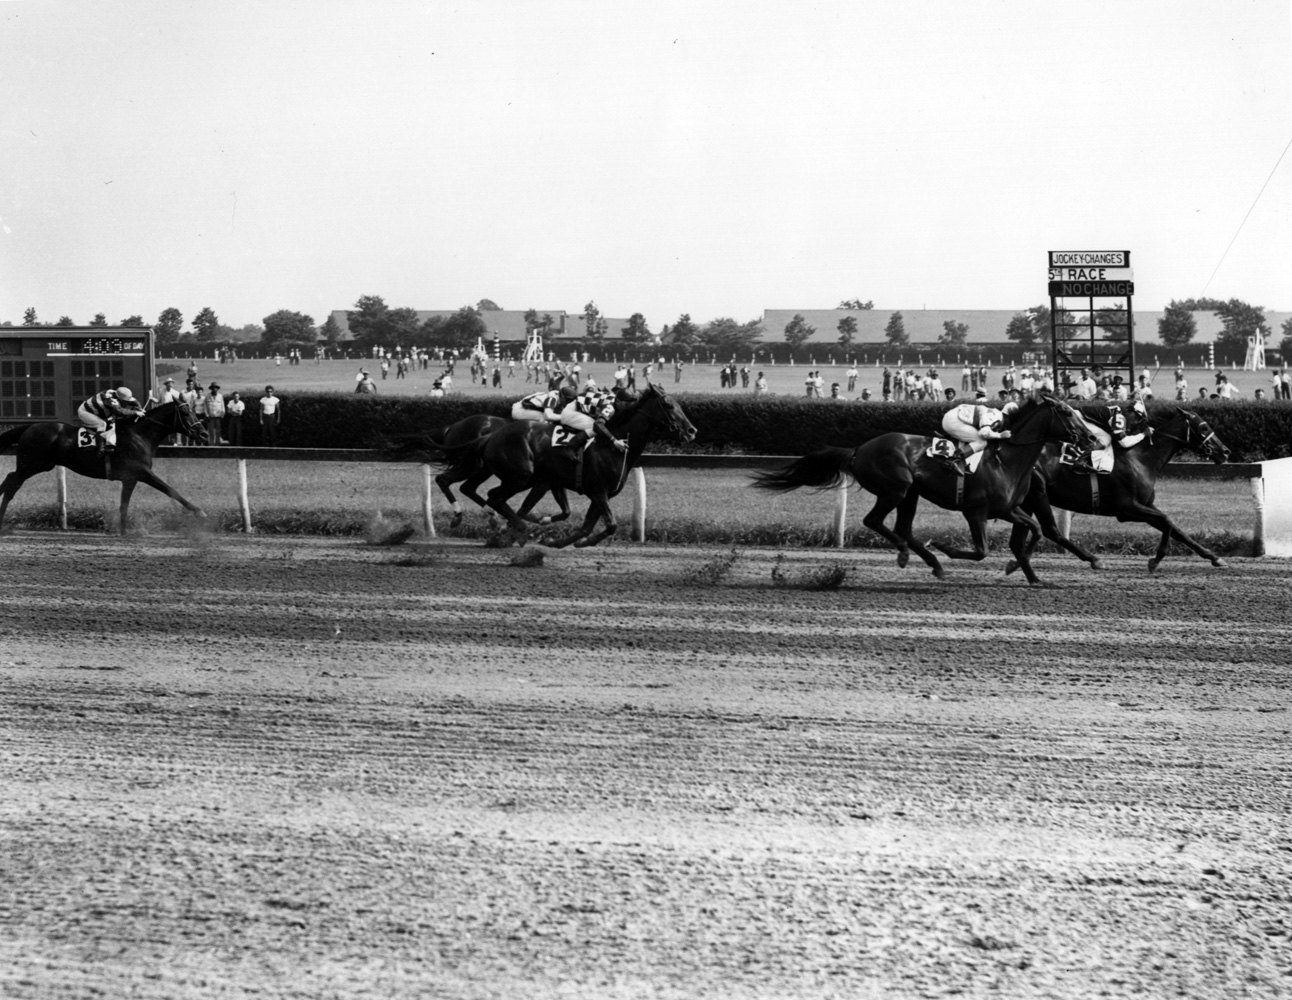 Assault (Eddie Arcaro up) winning the 1947 Butler Handicap at Jamaica Race Course (Keeneland Library Morgan Collection/Museum Collection)